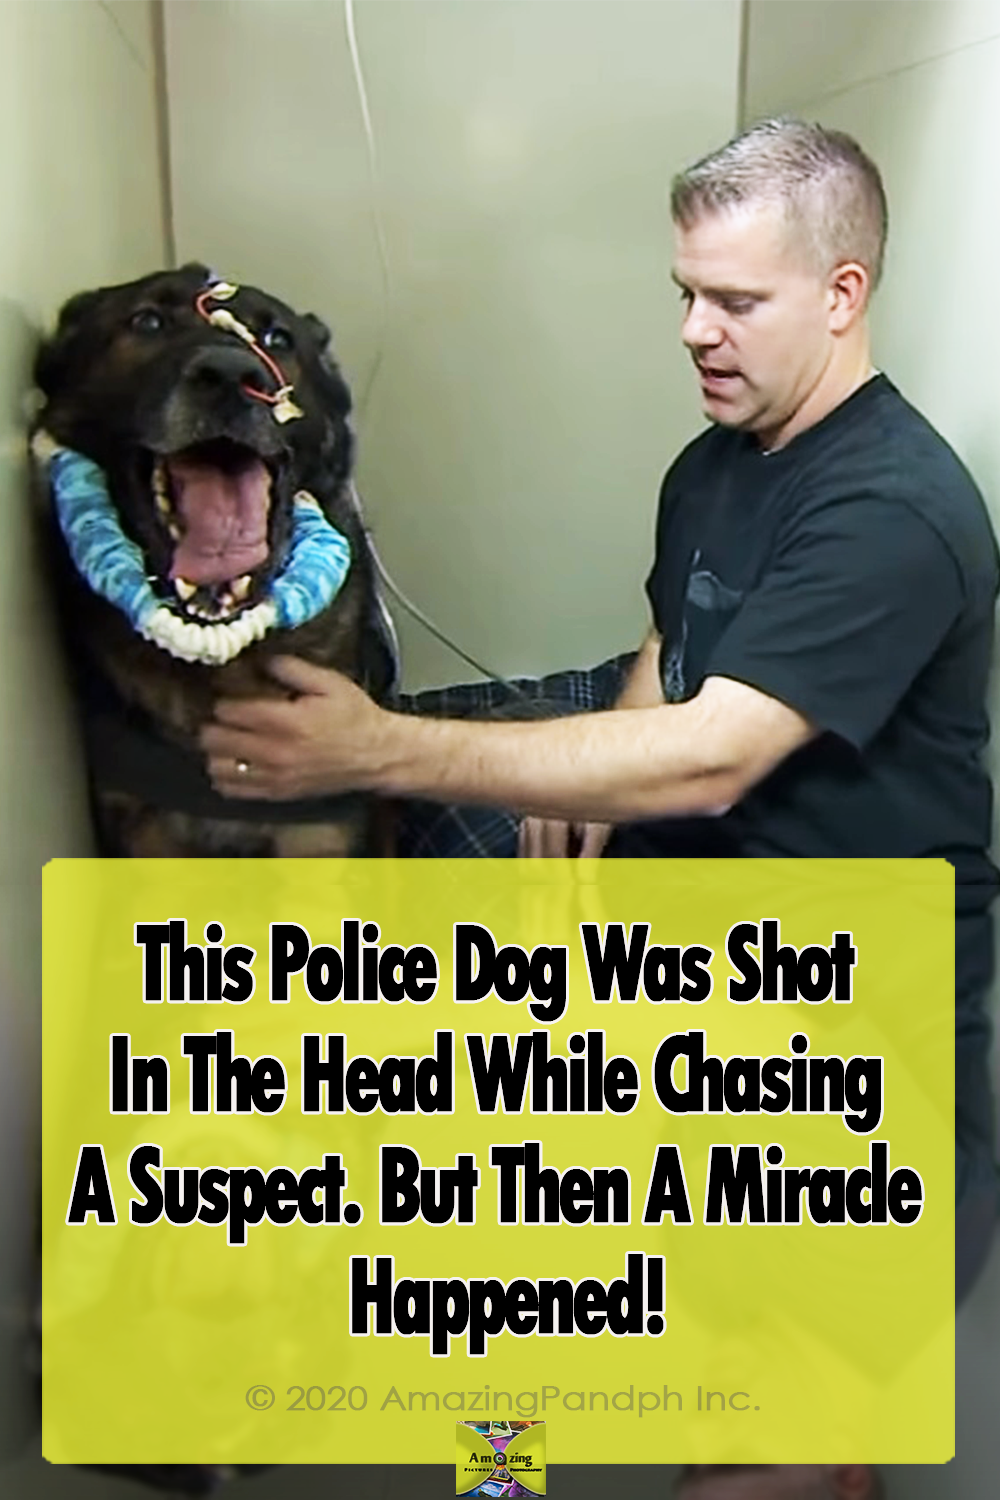 Police Dog, dogs, police, miracle, story, animals,